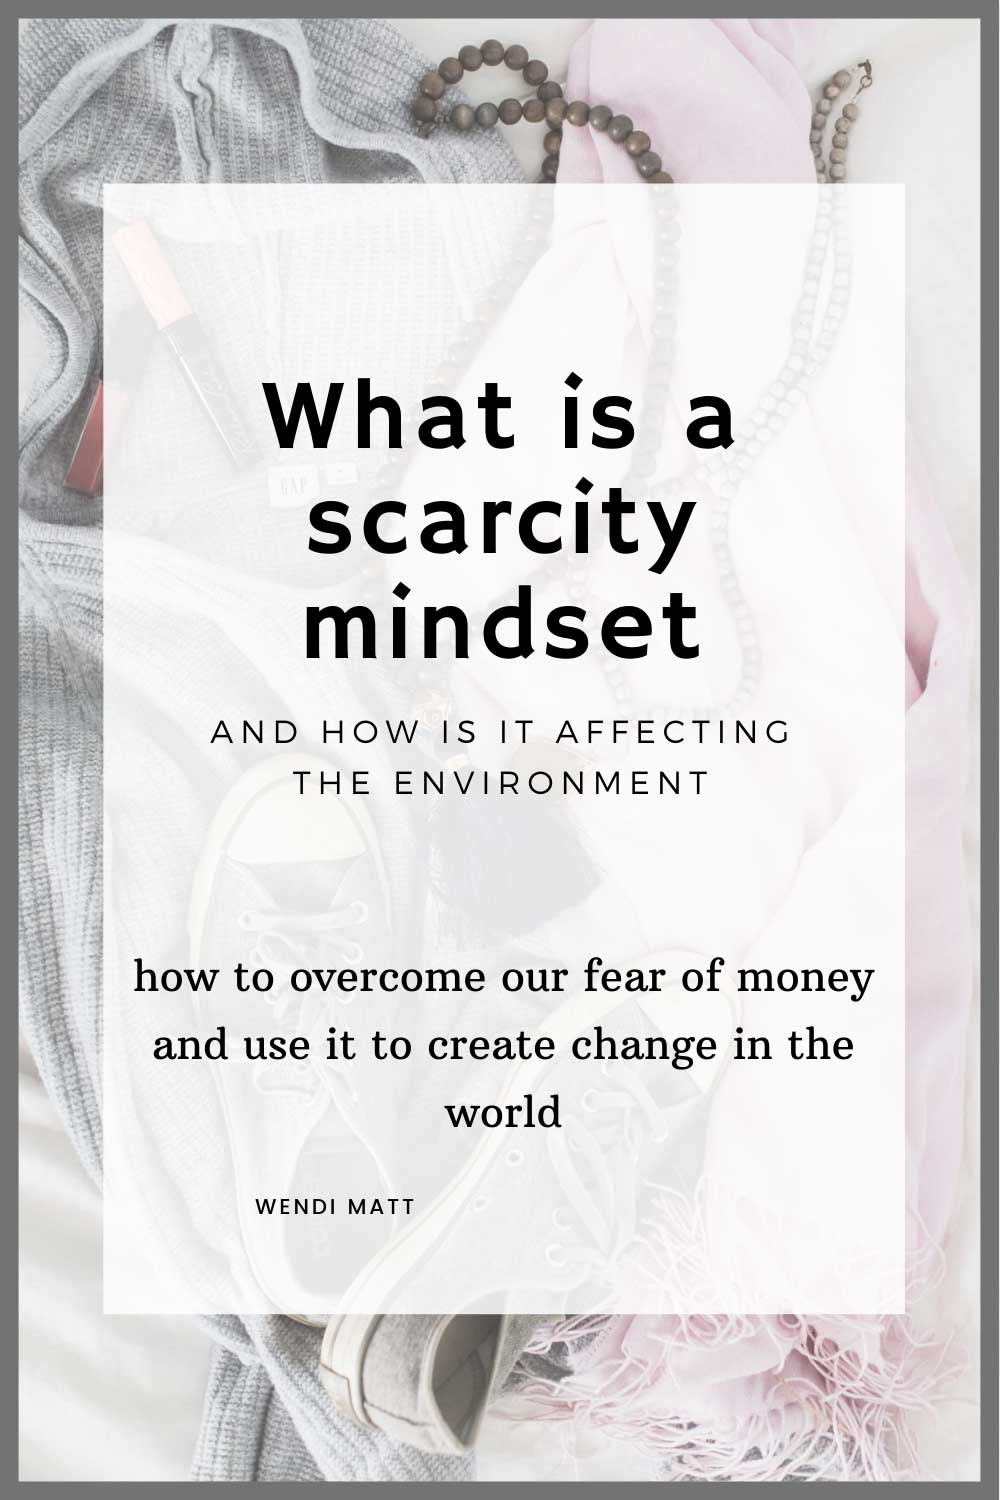 What is a Scarcity Mindset and How Does it Affect the Environment?